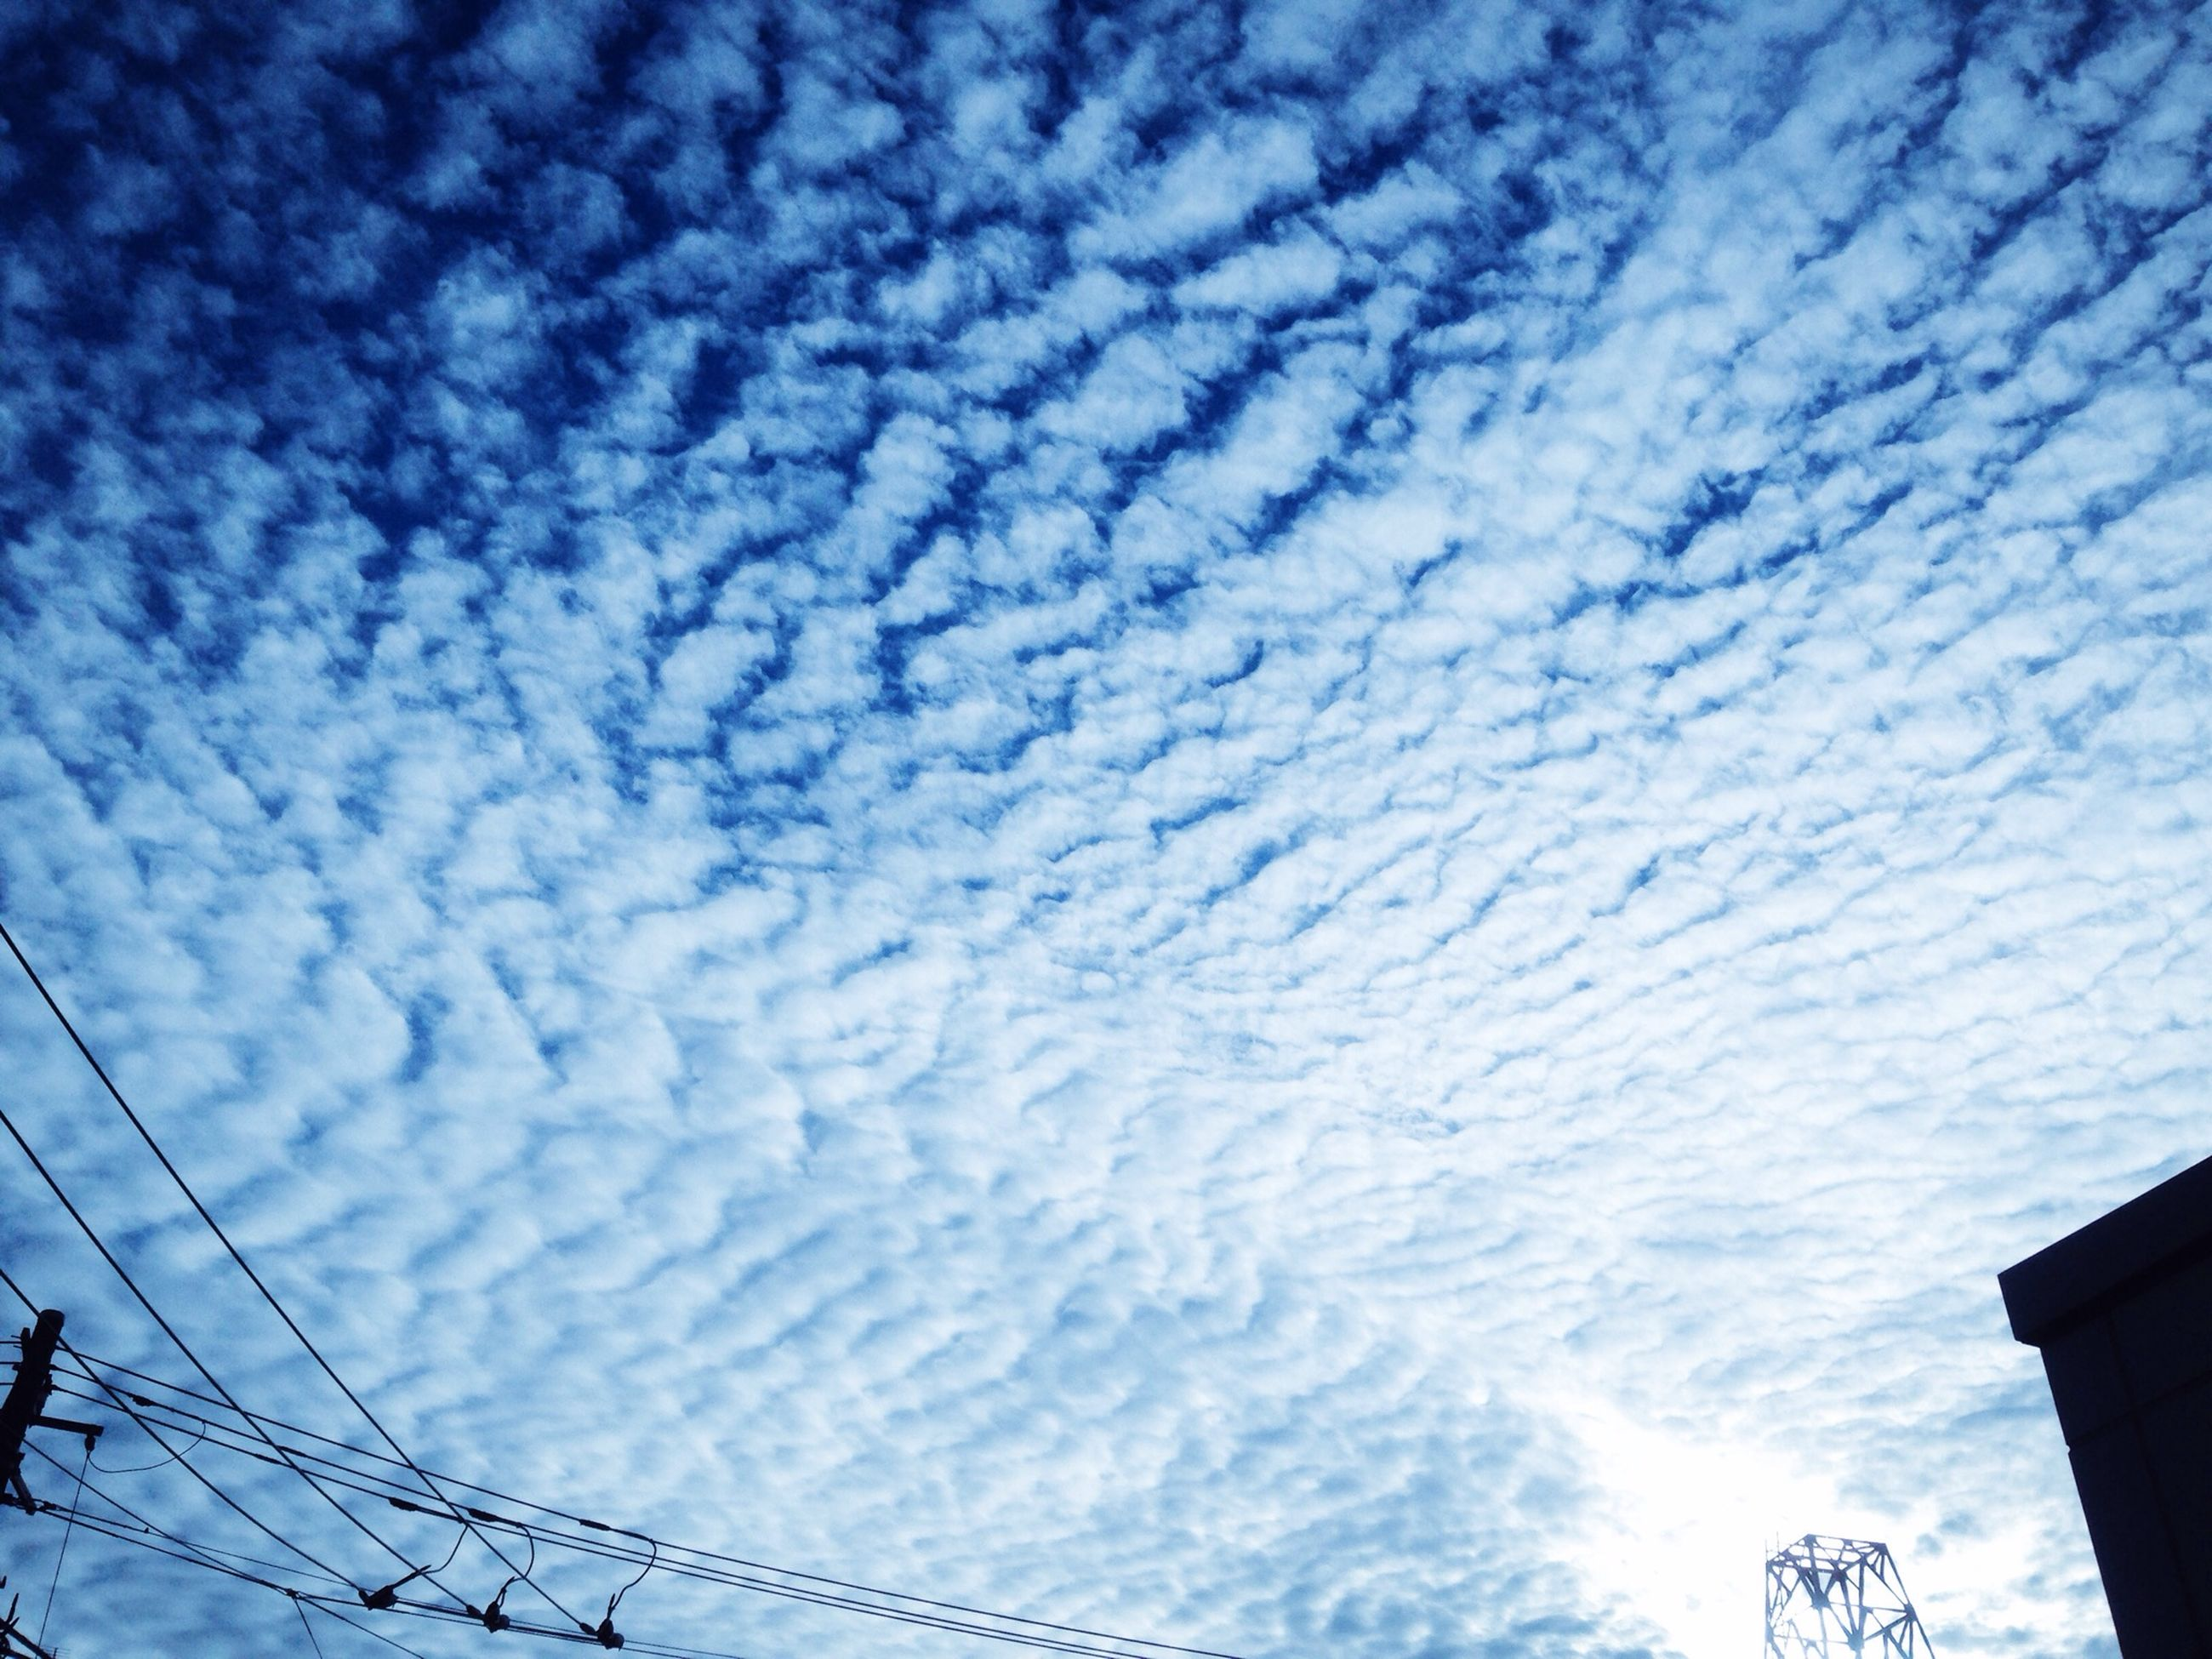 low angle view, sky, cloud - sky, built structure, architecture, blue, power line, cloudy, building exterior, cloud, electricity, cable, high section, silhouette, connection, outdoors, no people, electricity pylon, nature, power supply